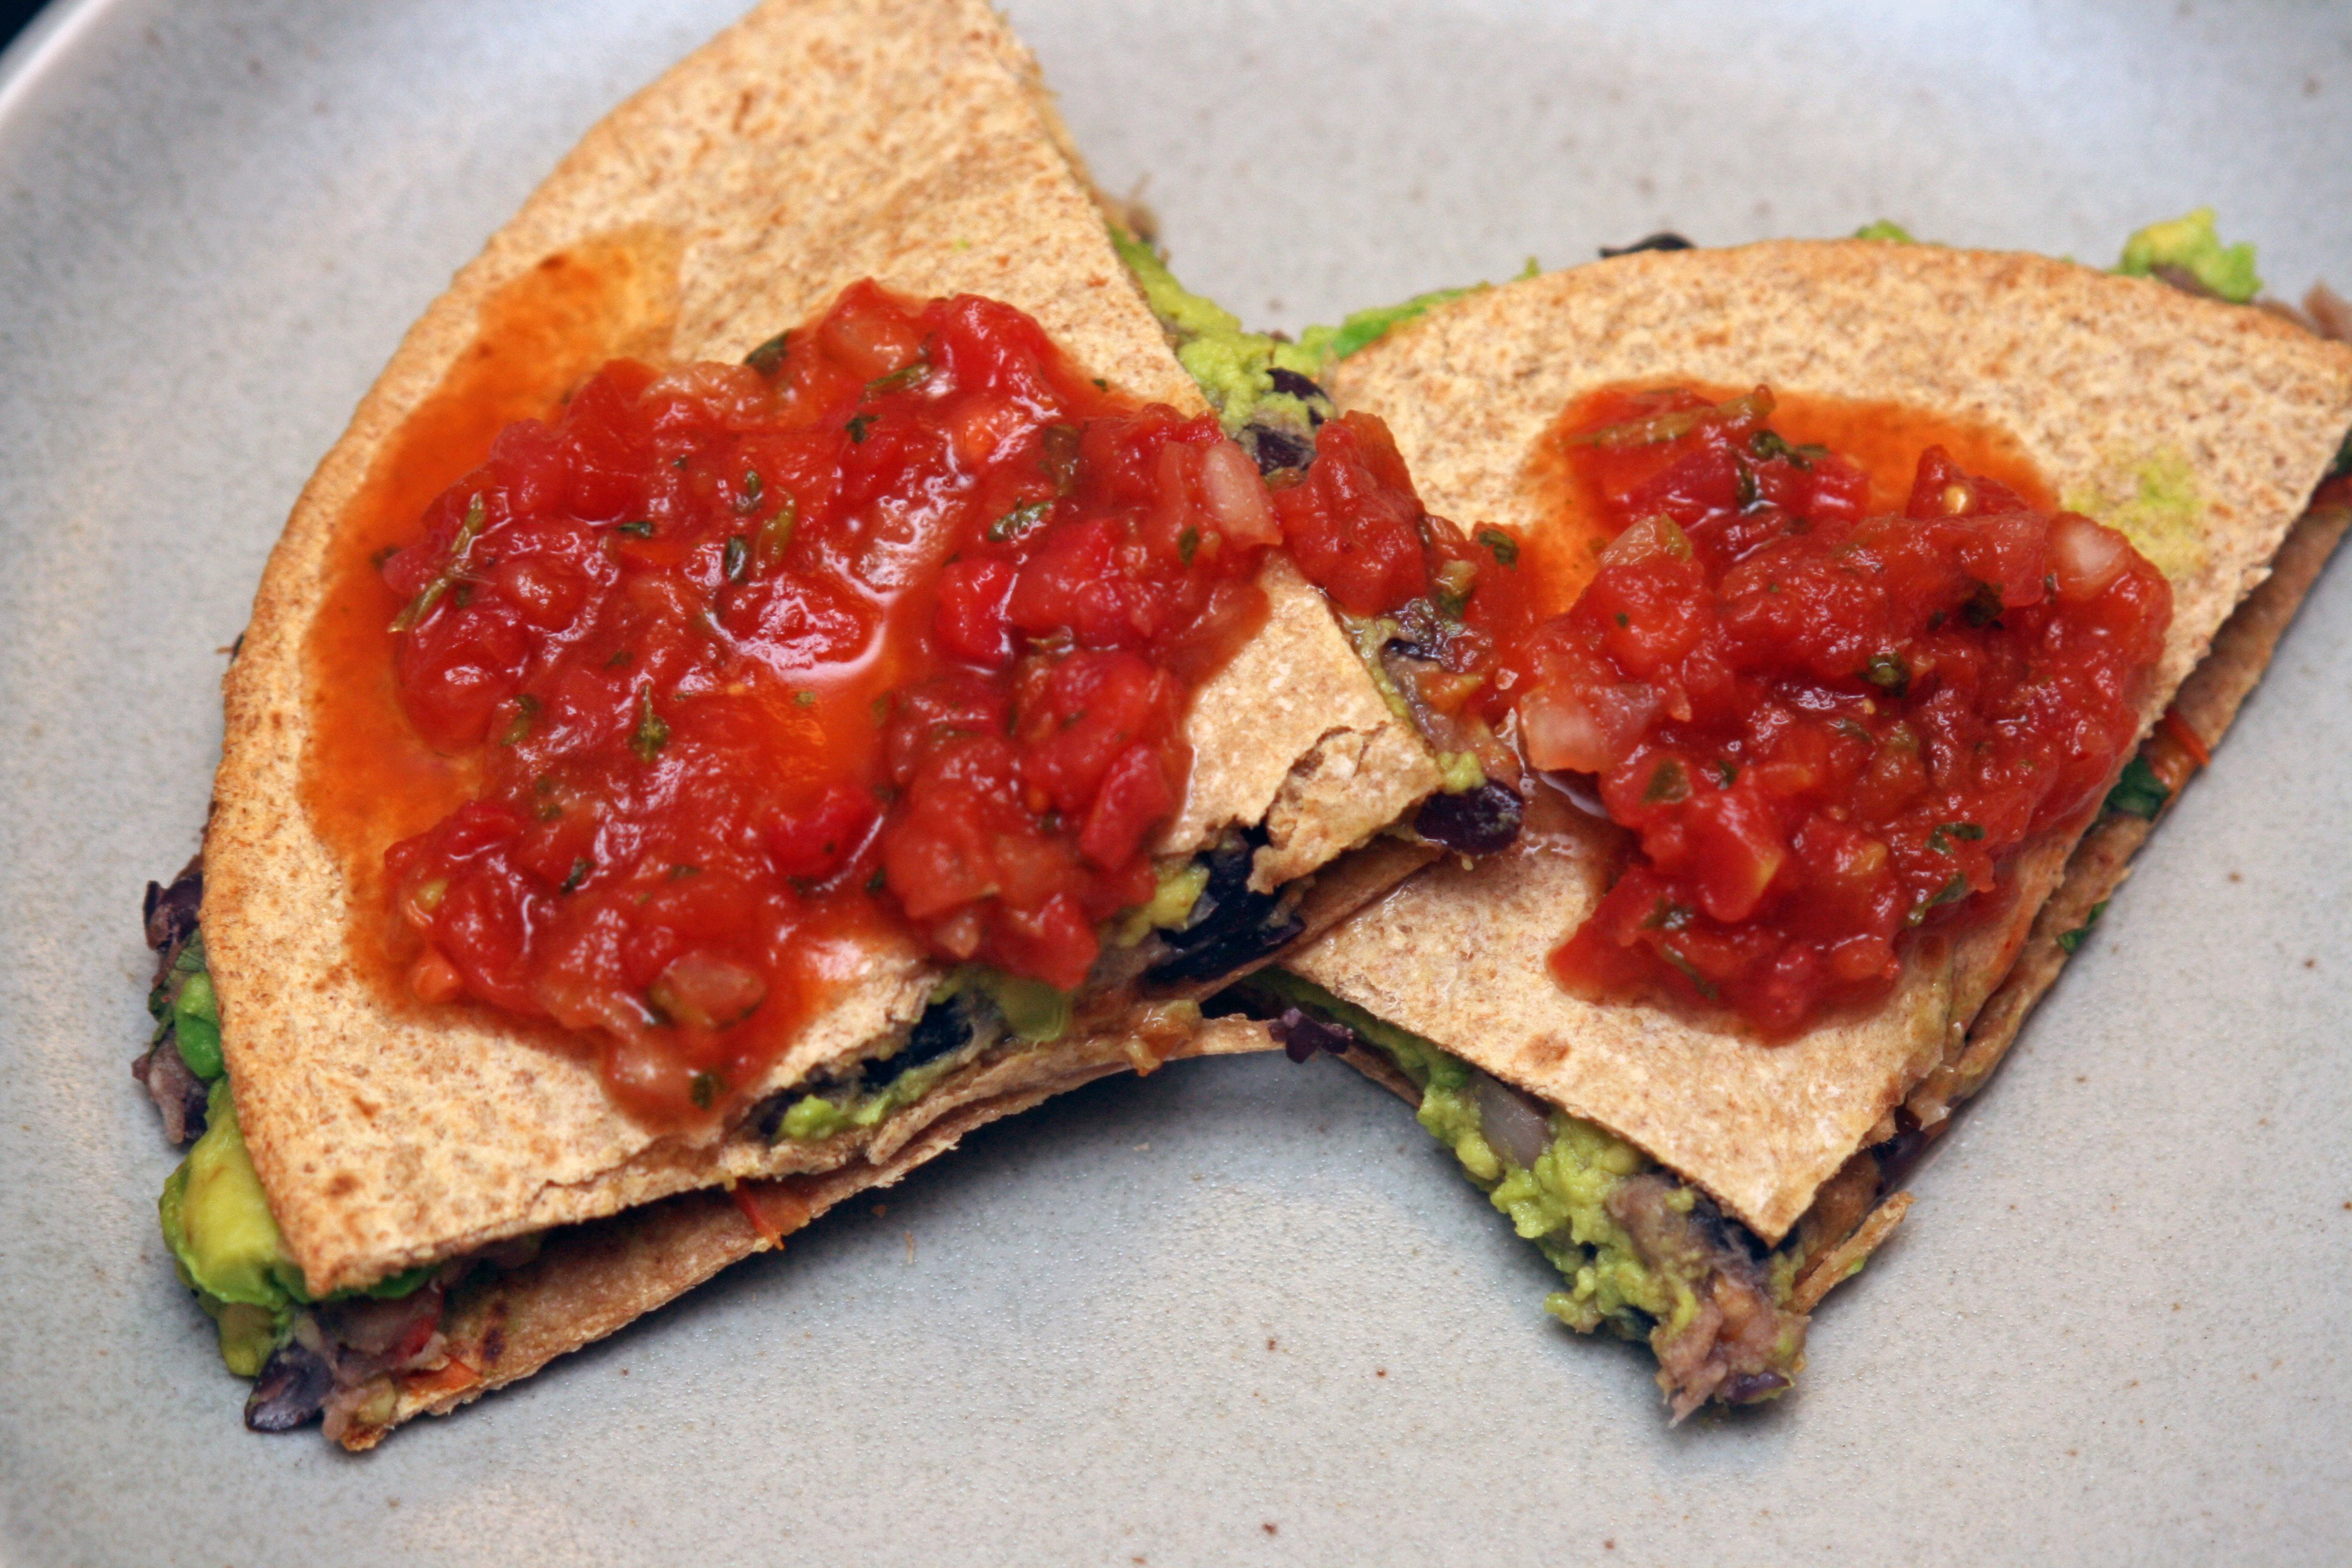 Outsmarting Food Quirks: Black Bean and Banana Quesadillas